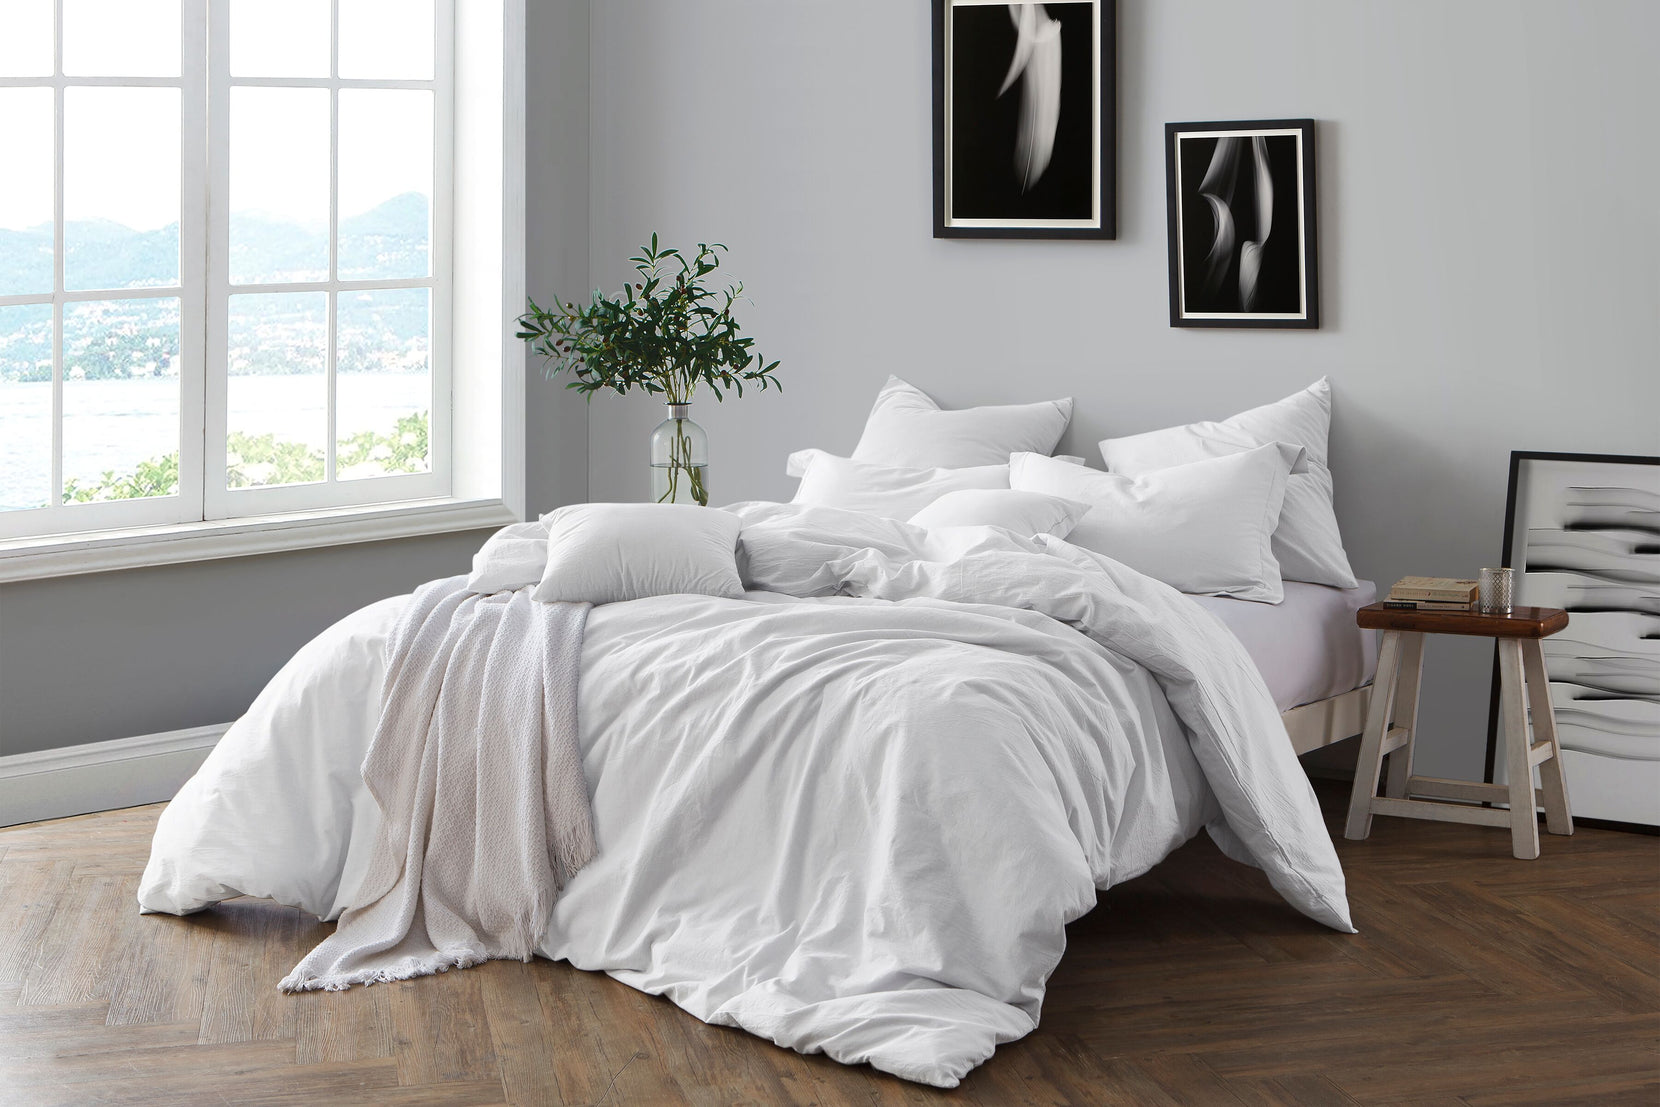 Prewashed Yarn Dye Cotton Chambray Duvet Cover Set